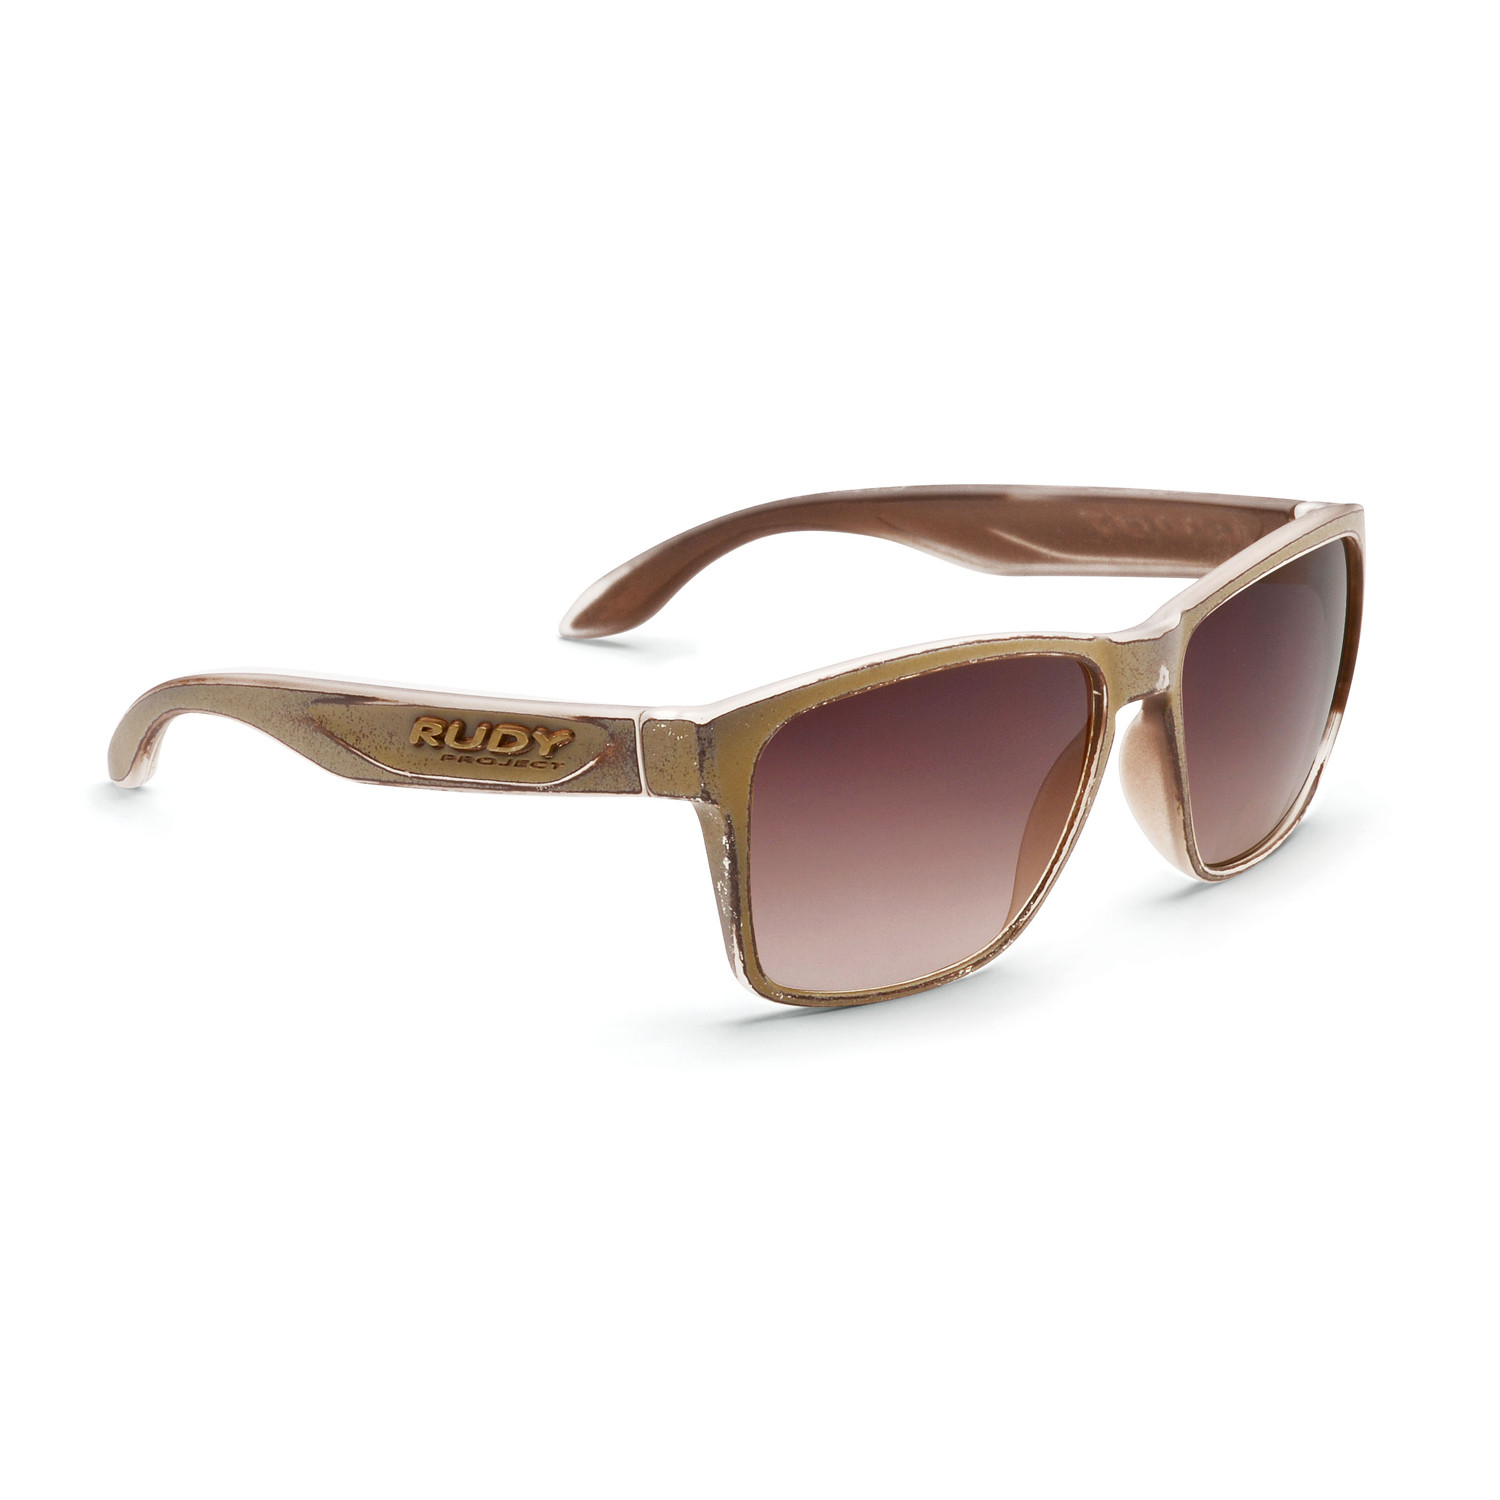 24f6bf5e8 Spinhawk // Brown Lenses (Washed Bronze Frame) - Rudy Project ...